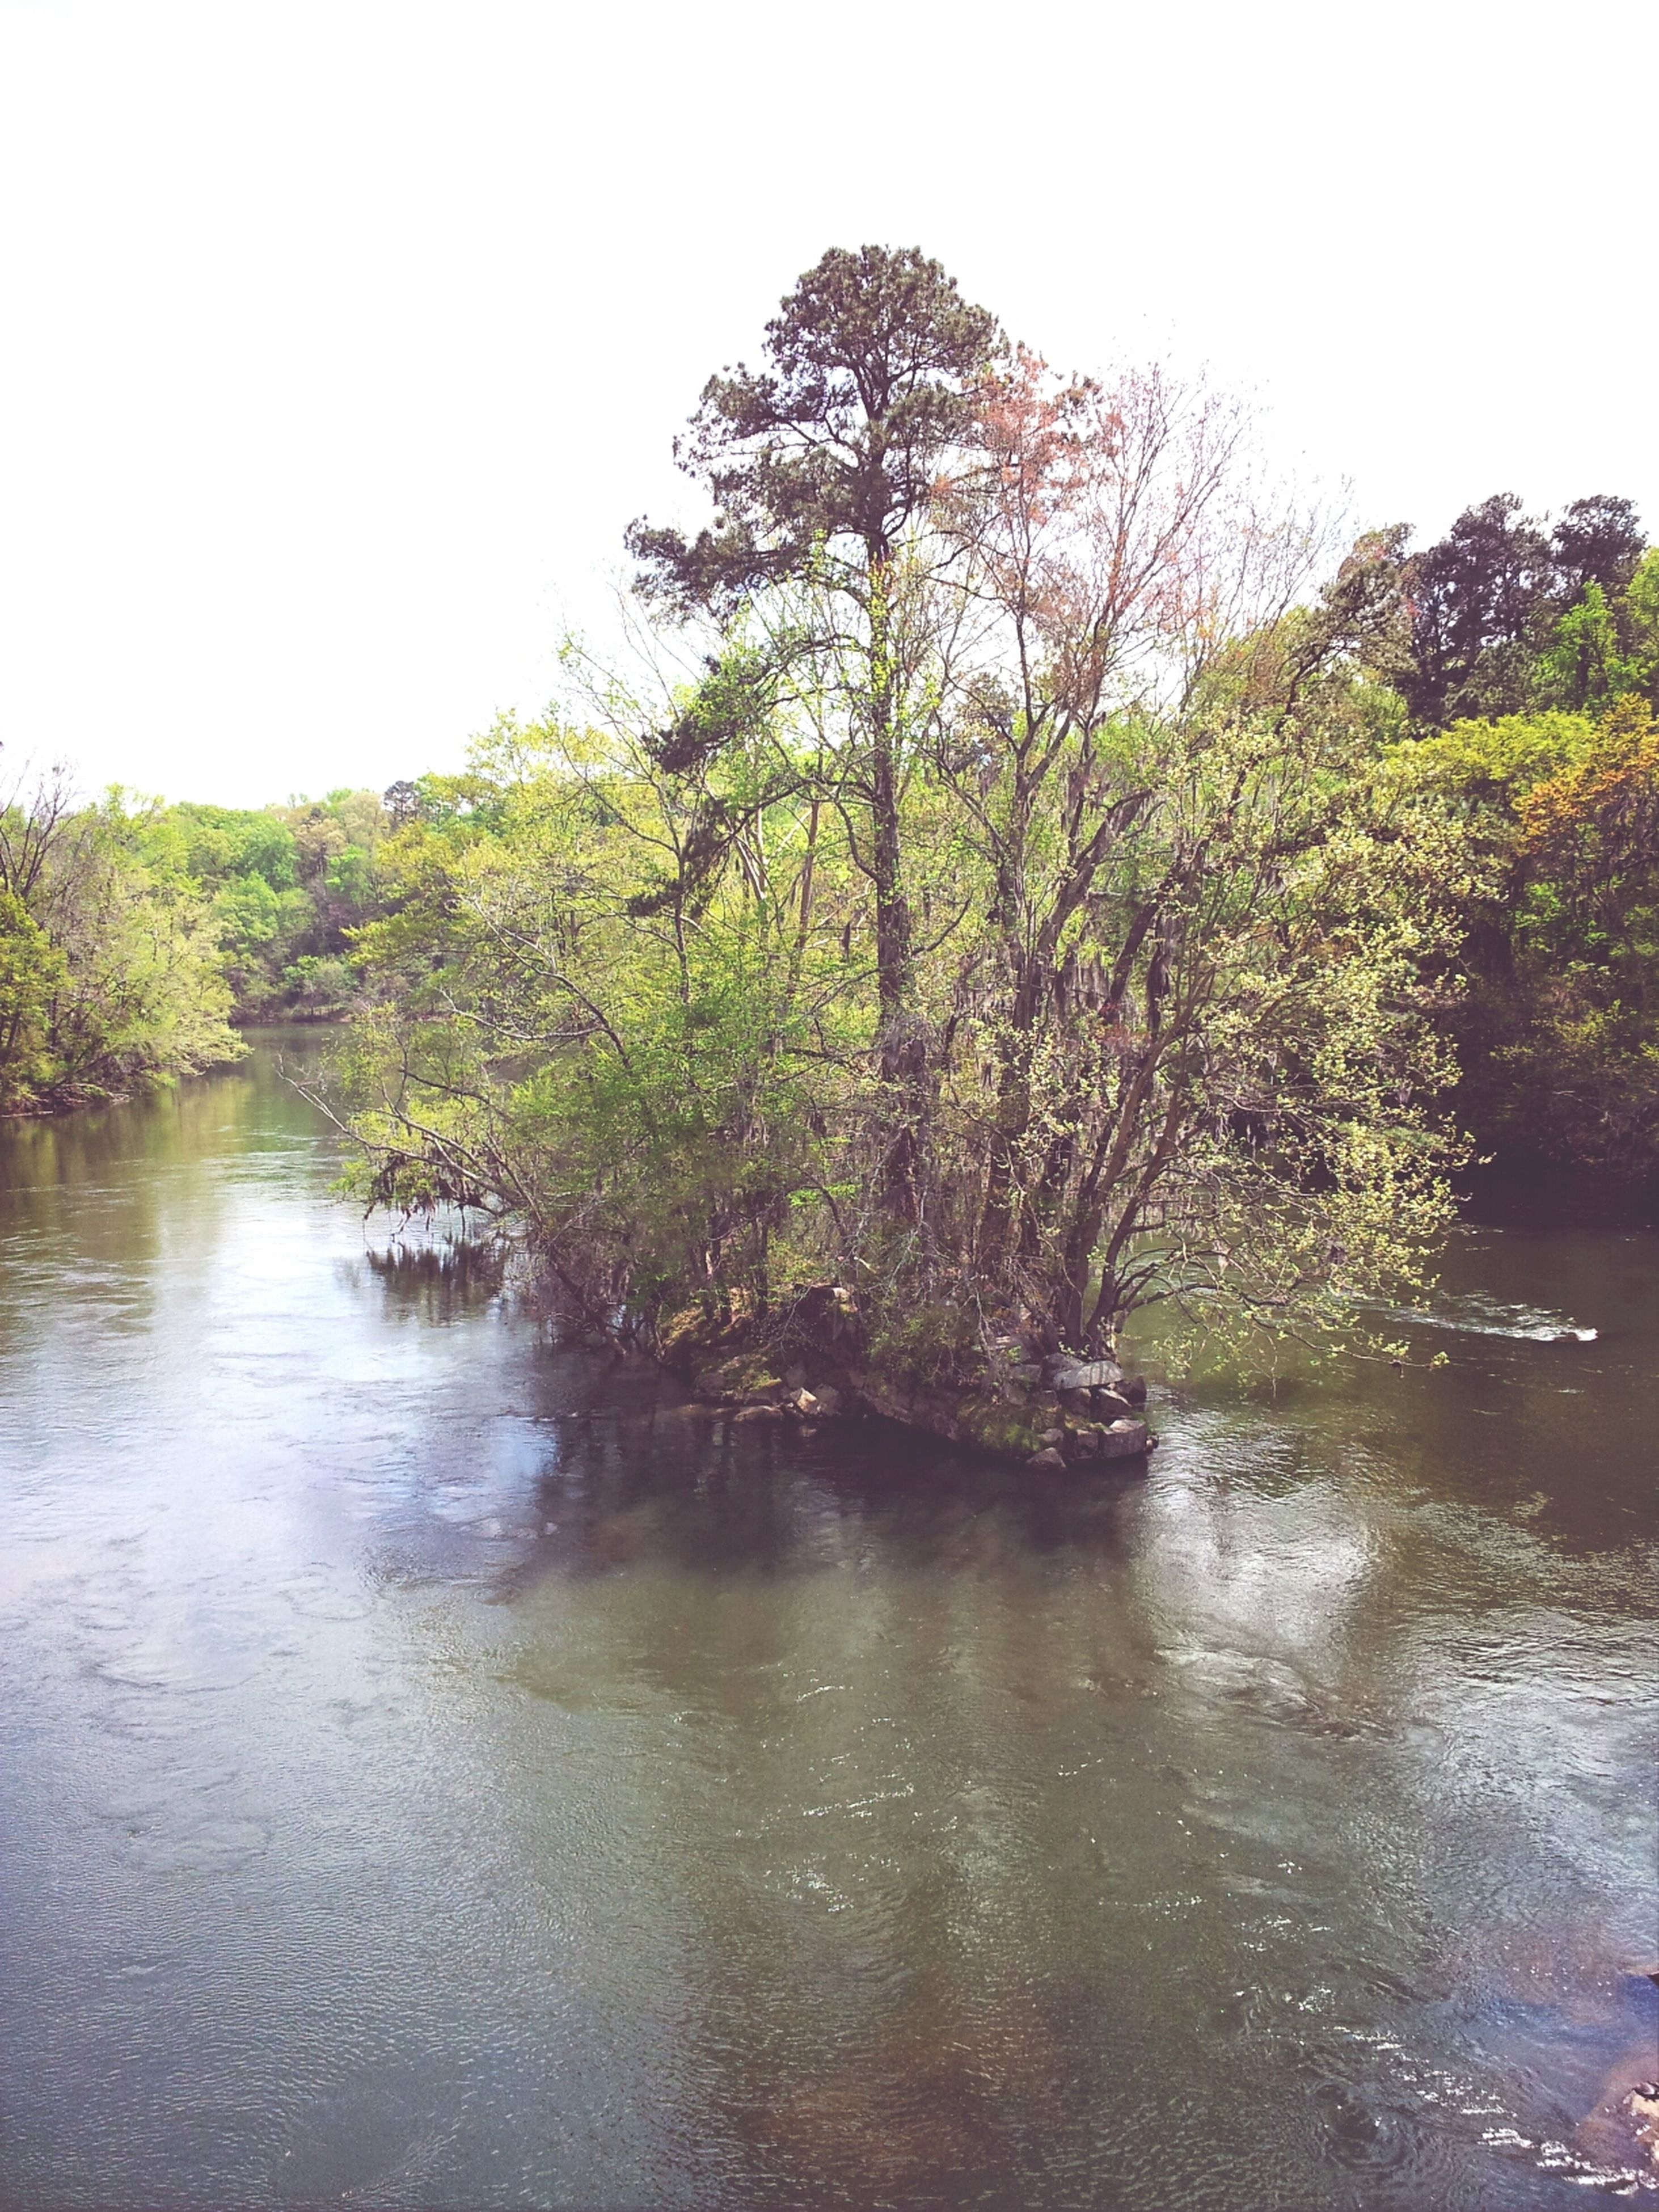 tree, water, tranquility, tranquil scene, clear sky, reflection, waterfront, scenics, beauty in nature, lake, nature, growth, river, green color, idyllic, forest, day, outdoors, sky, non-urban scene